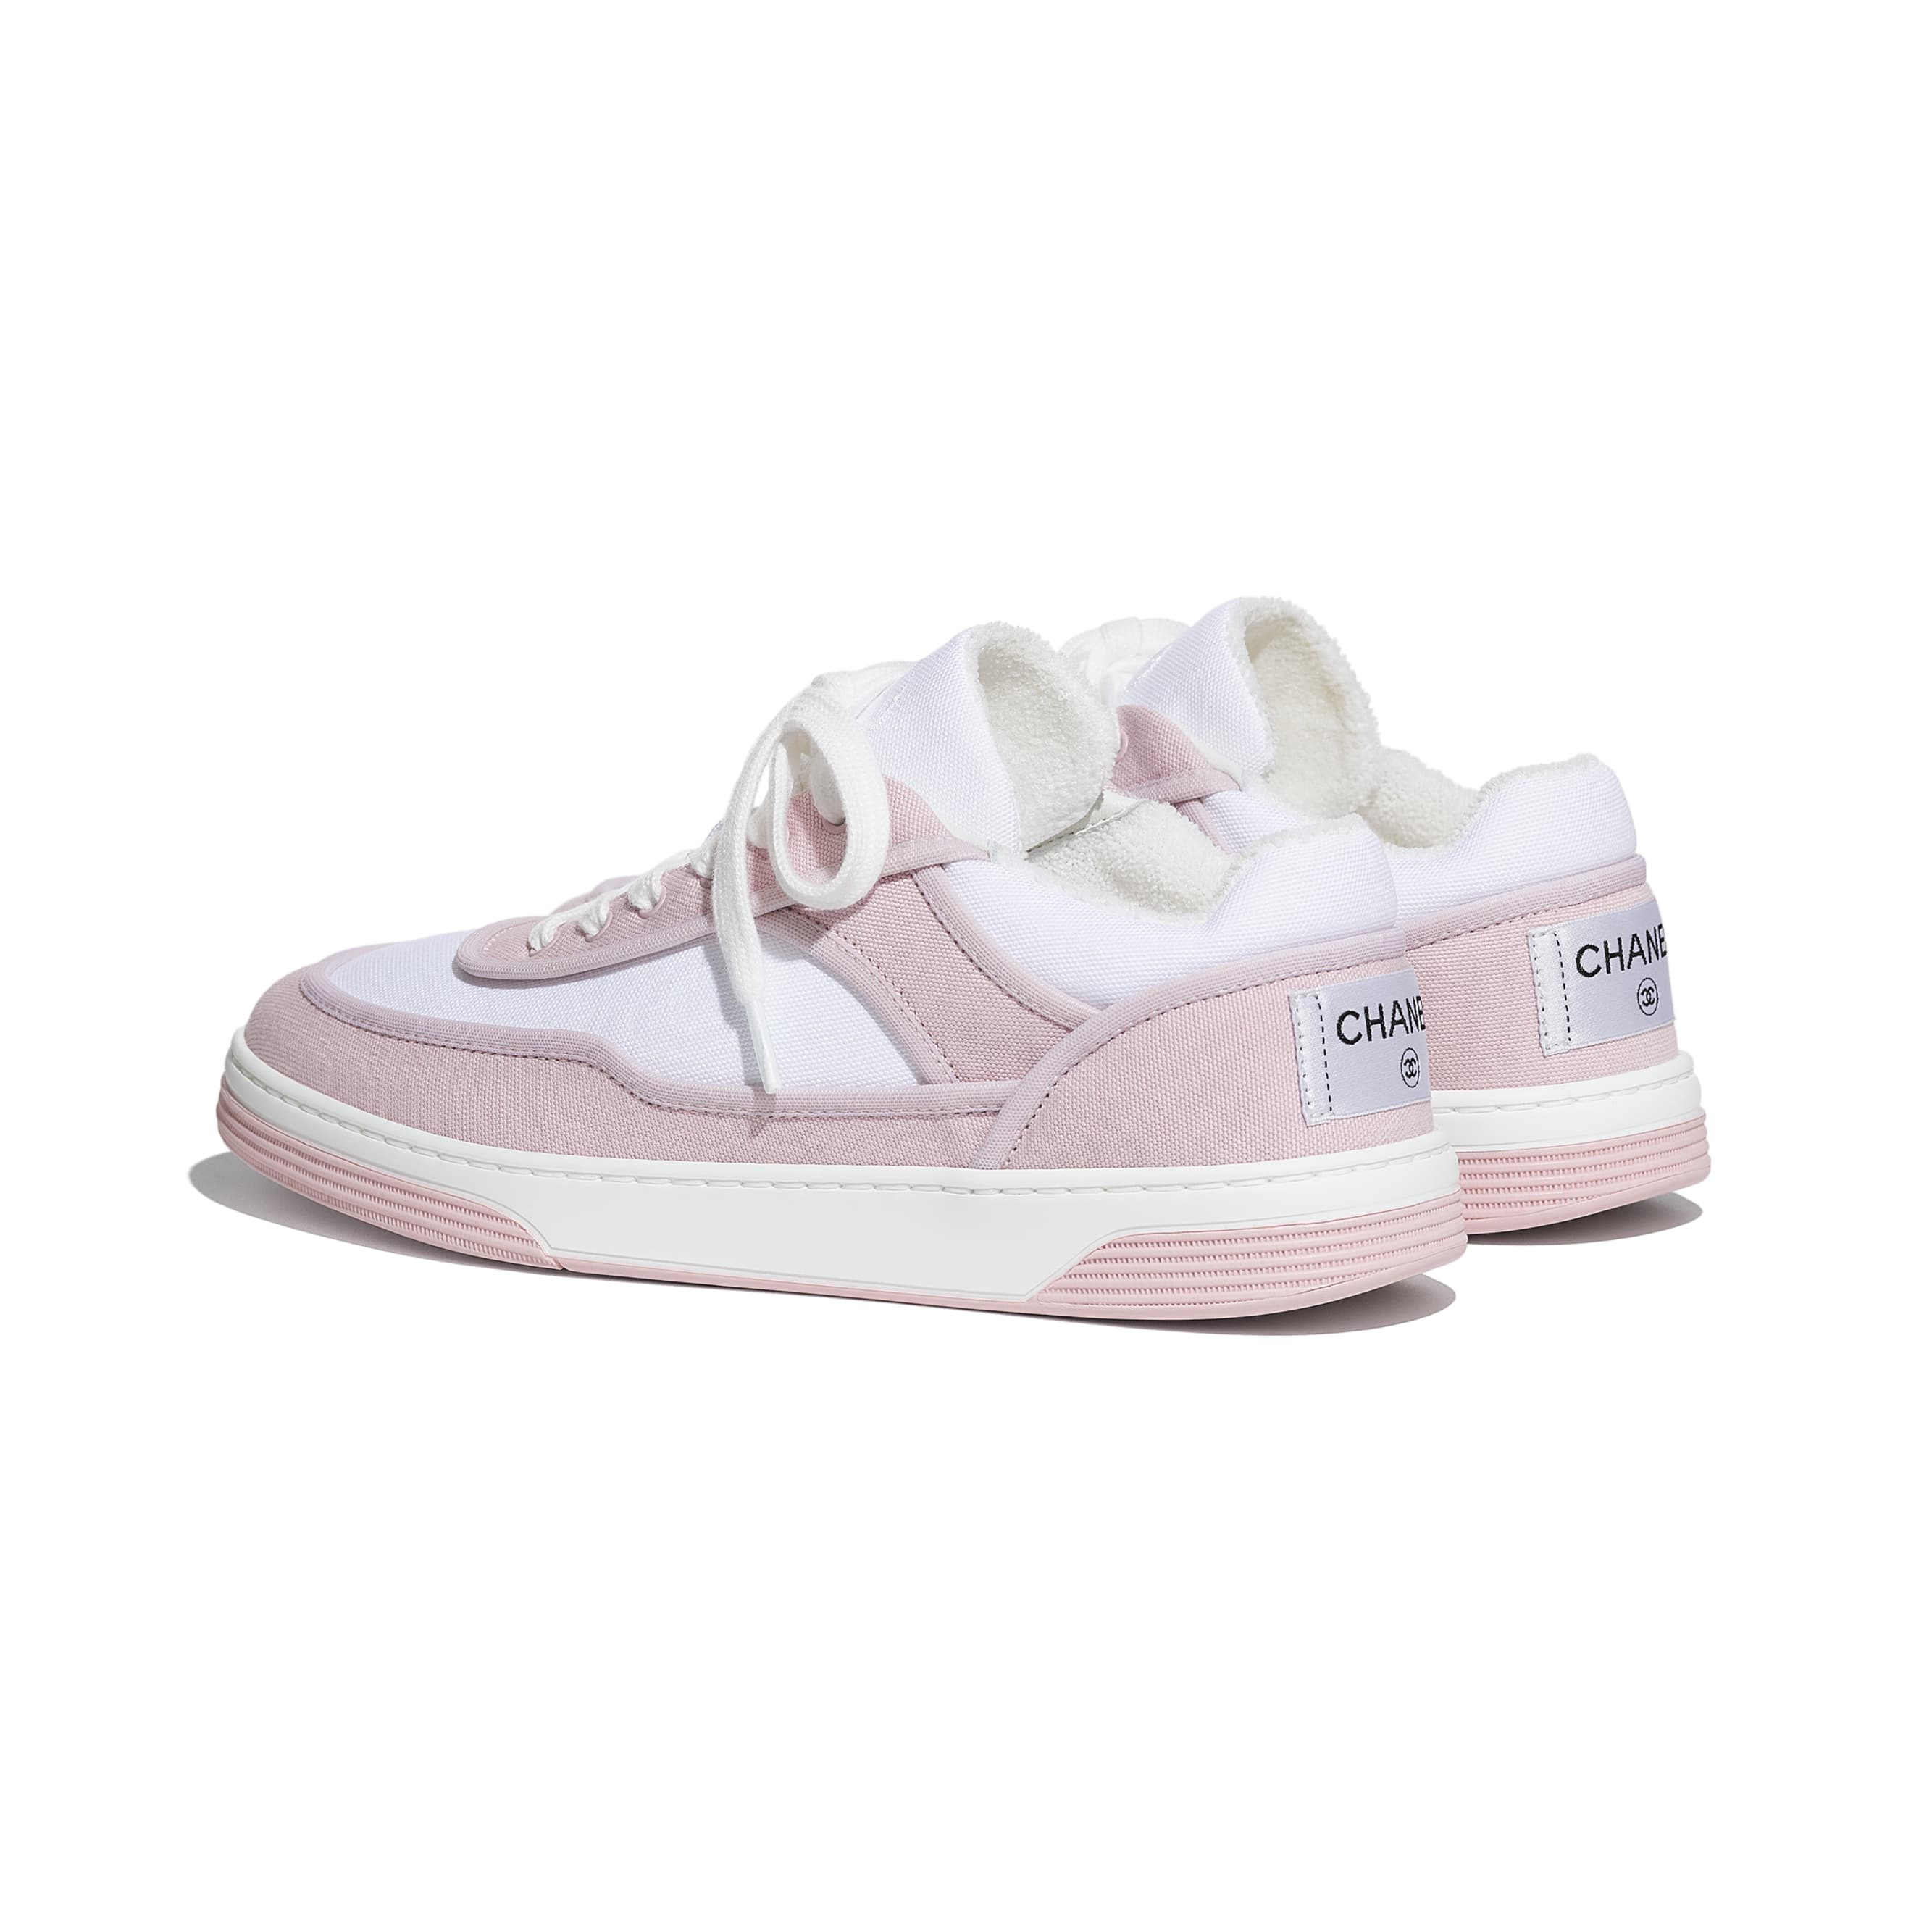 Trainers - Pink & White - Fabric - CHANEL - Other view - see standard sized version